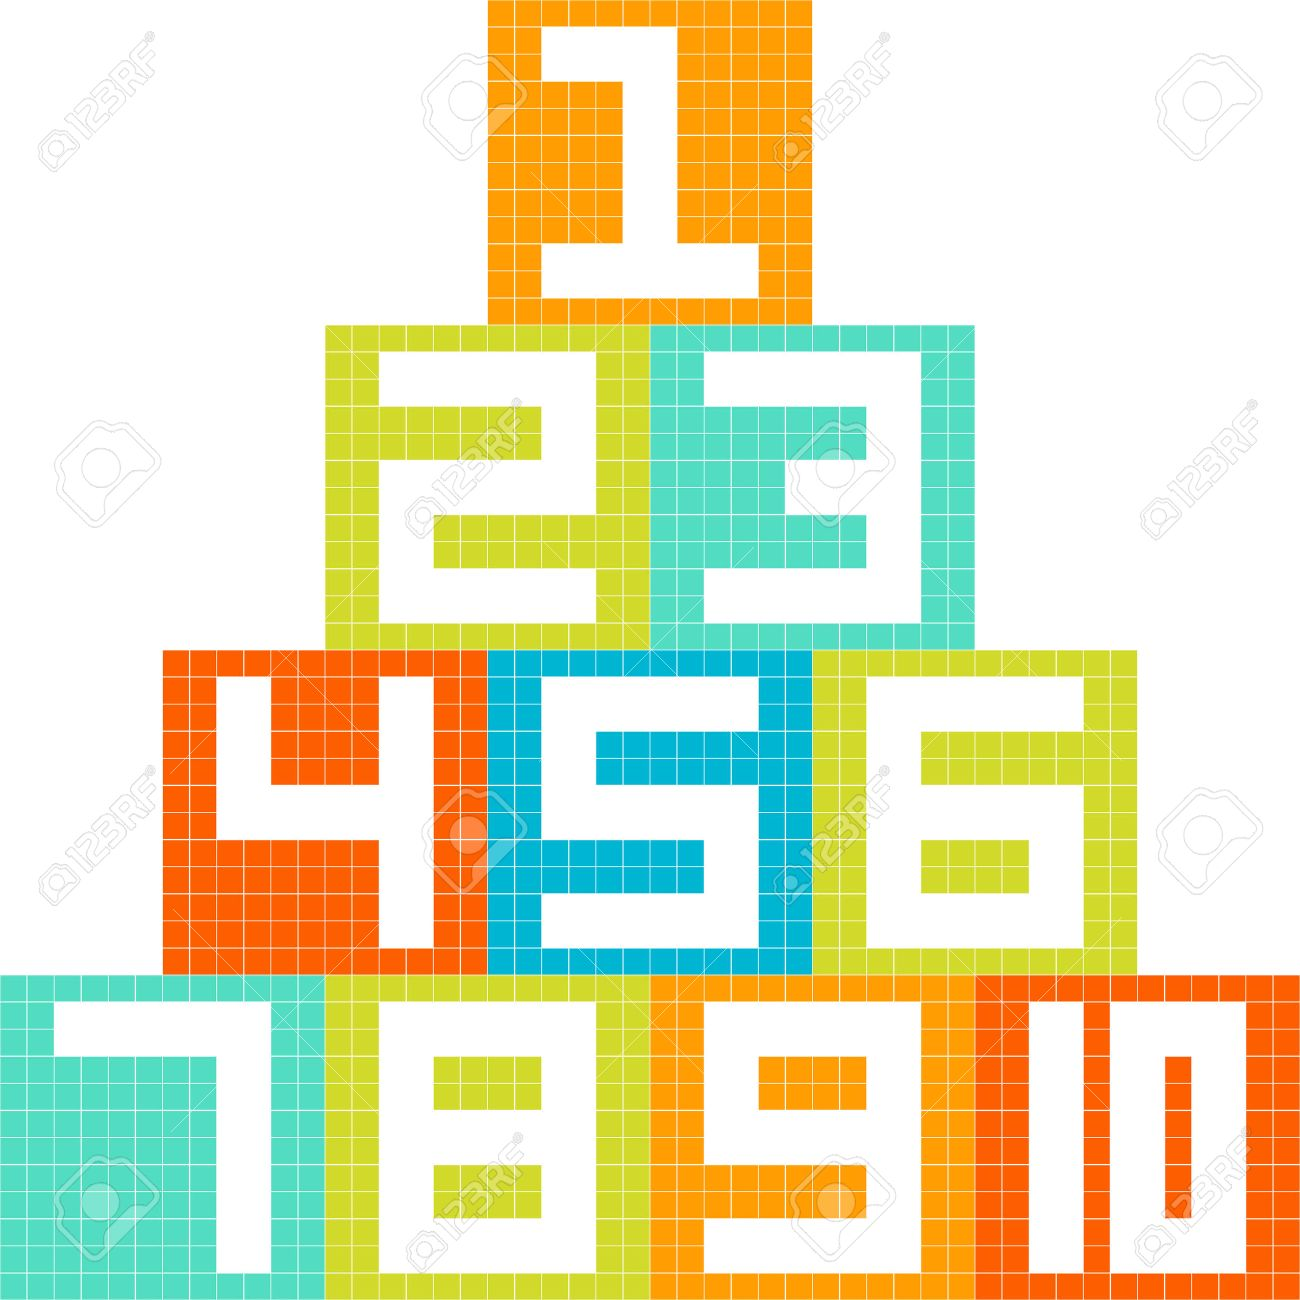 8 Bit Pixel Art Number 1 10 Blocks Arranged In A Pyramid Created Royalty Free Cliparts Vectors And Stock Illustration Image 23659985